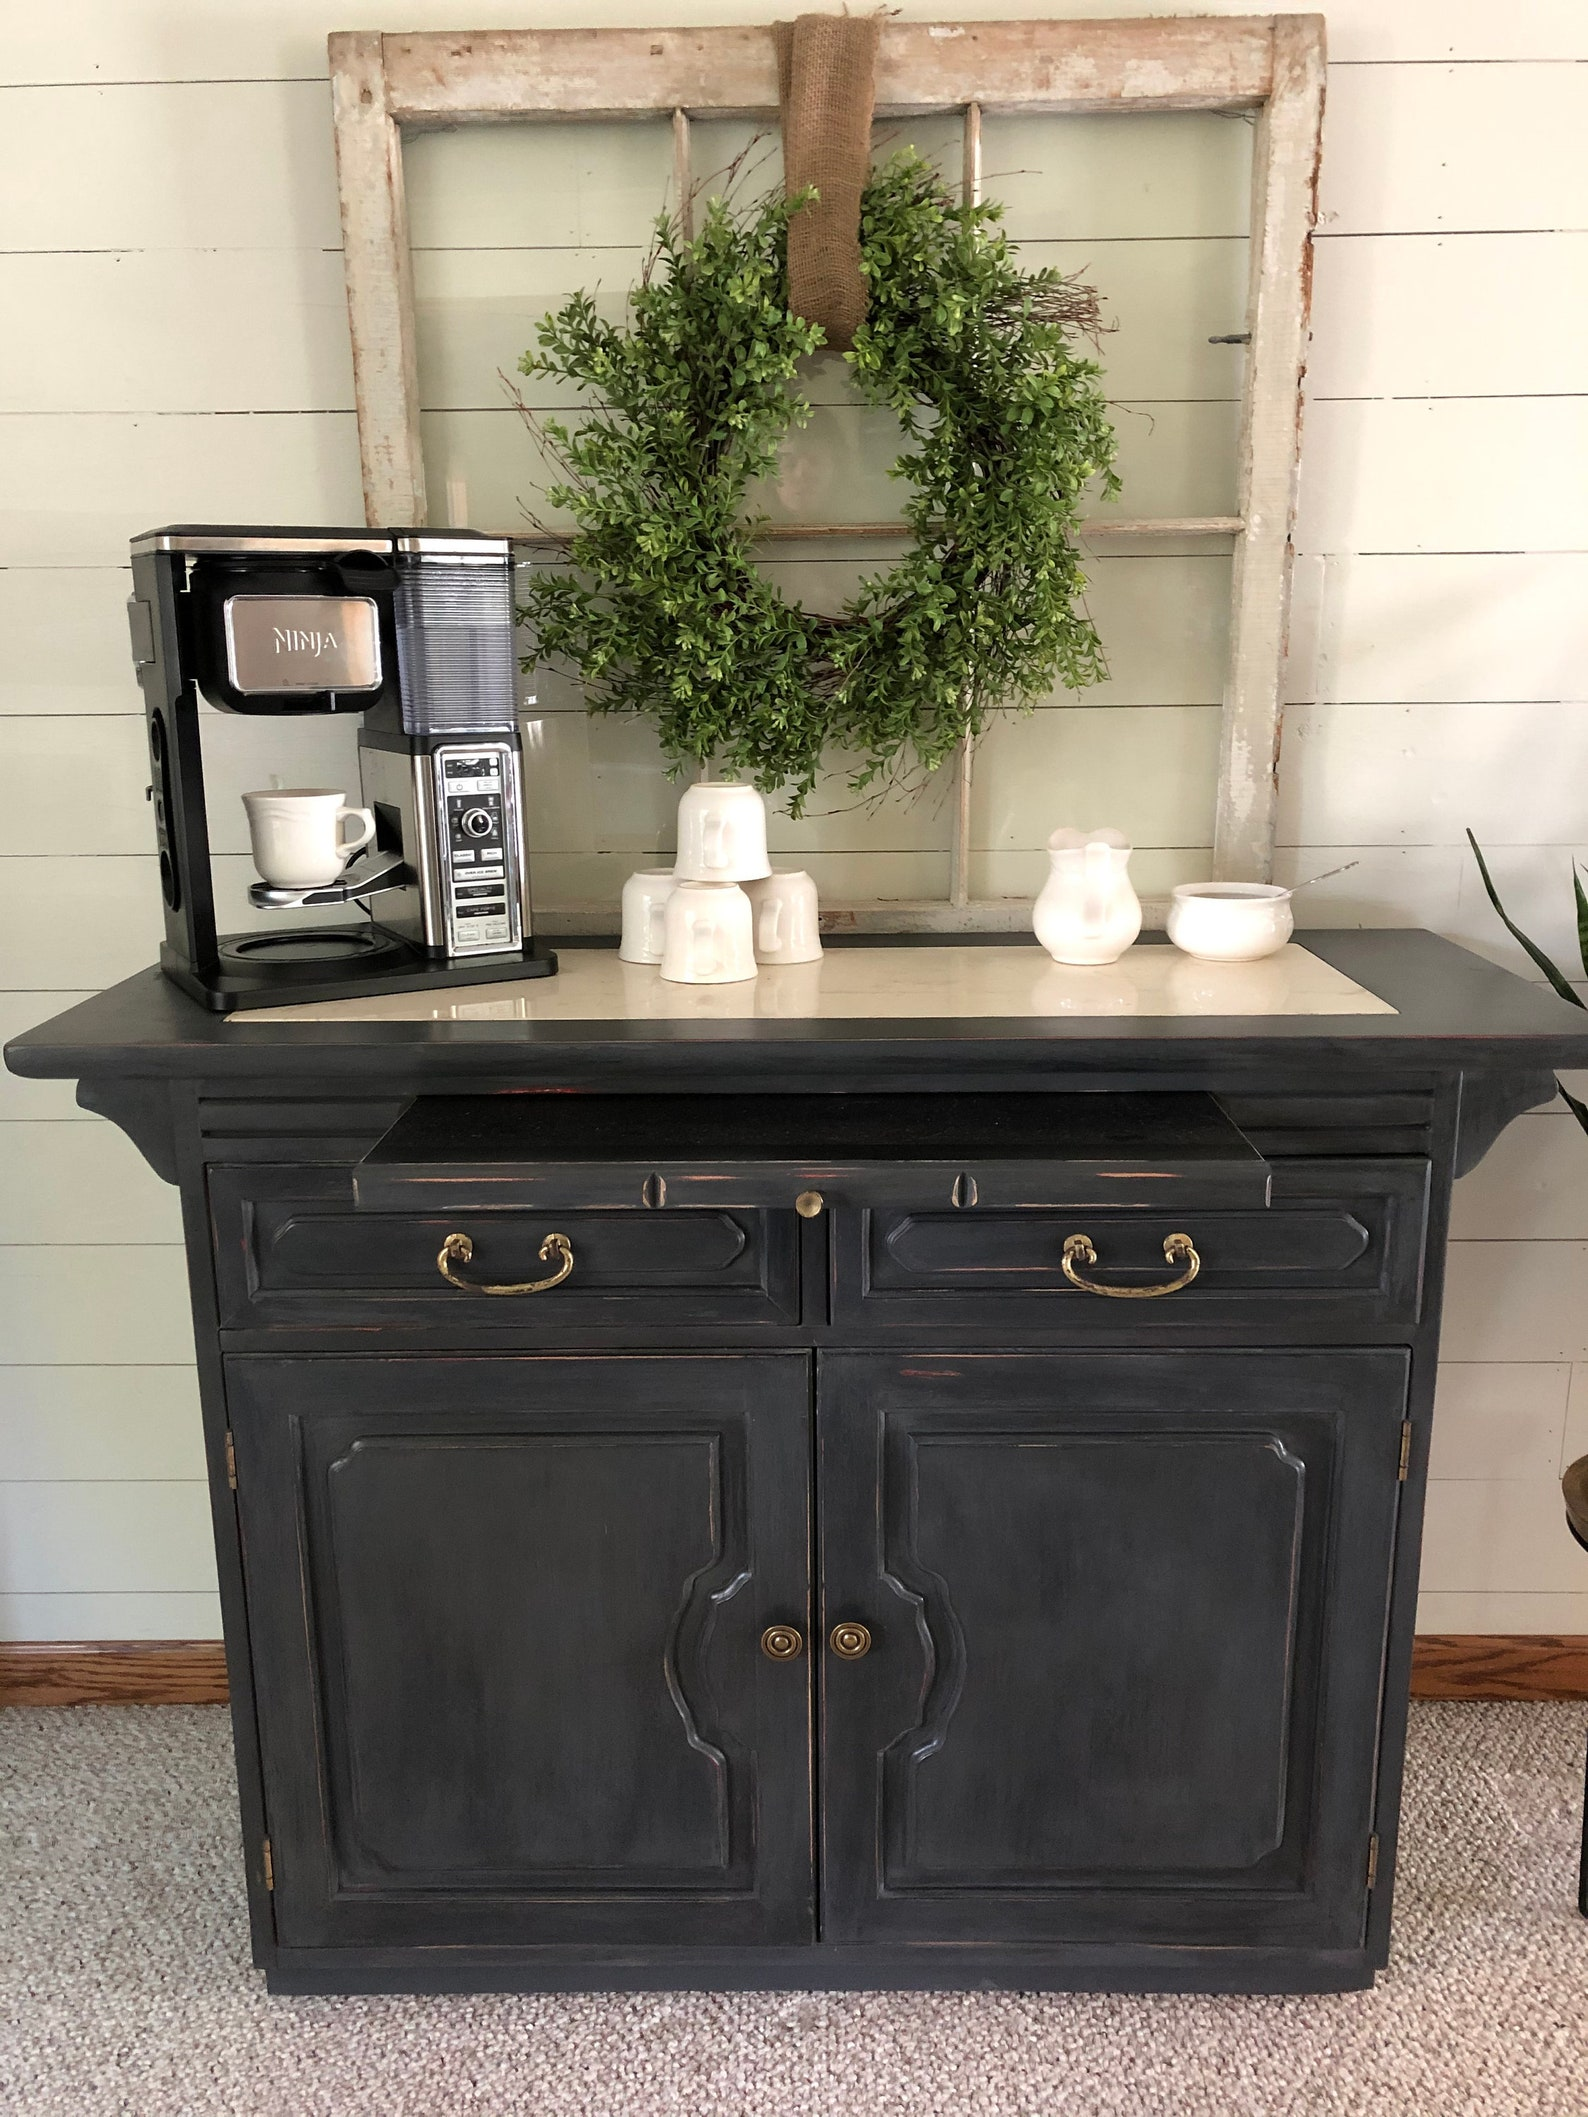 Bar Cabinet Units Between 200 and 500 Dollars Page Two ...